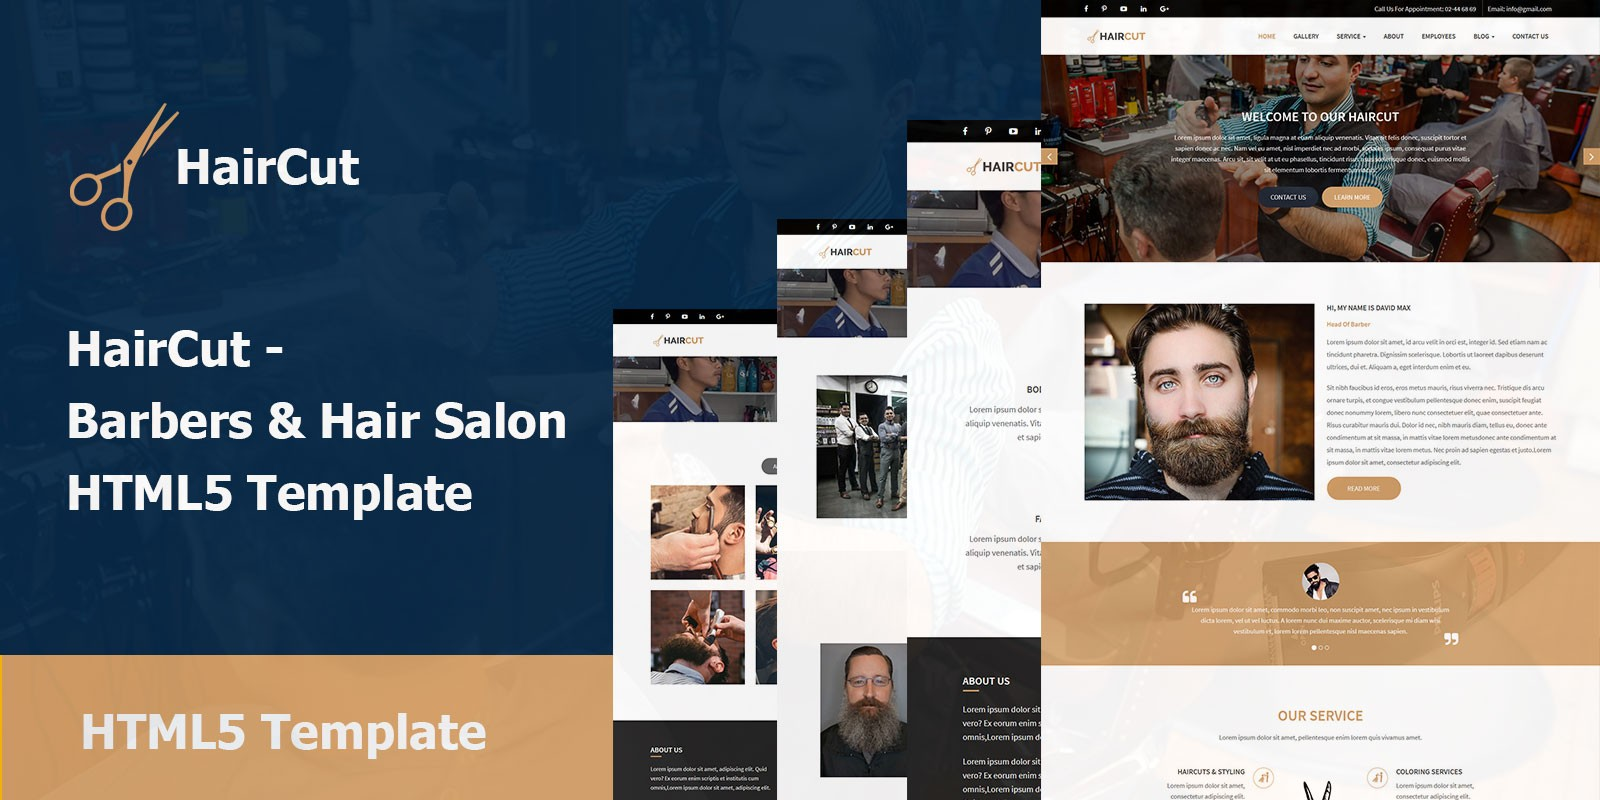 HairCut - Barbers And Hair Salon HTML5 Template